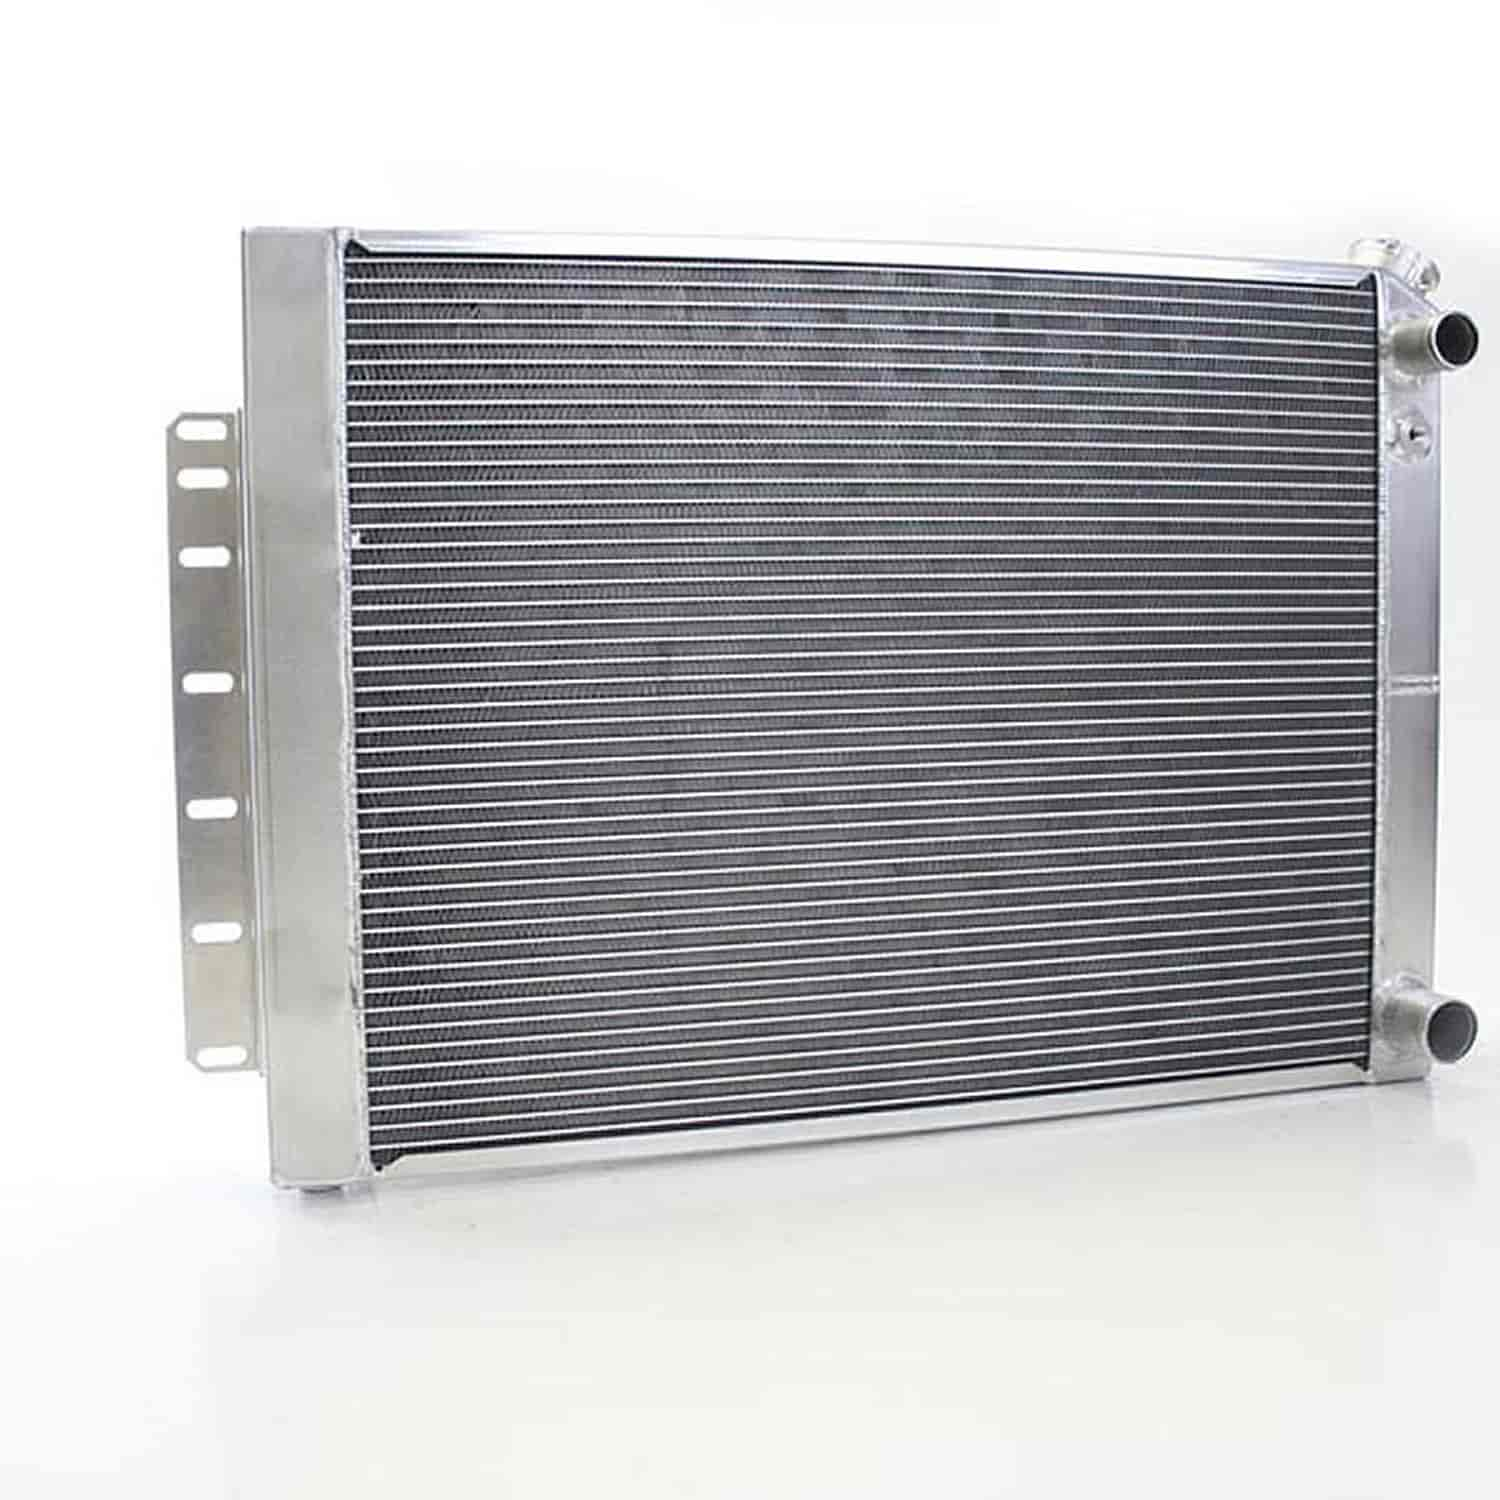 Griffin Radiators 8-00016-LS